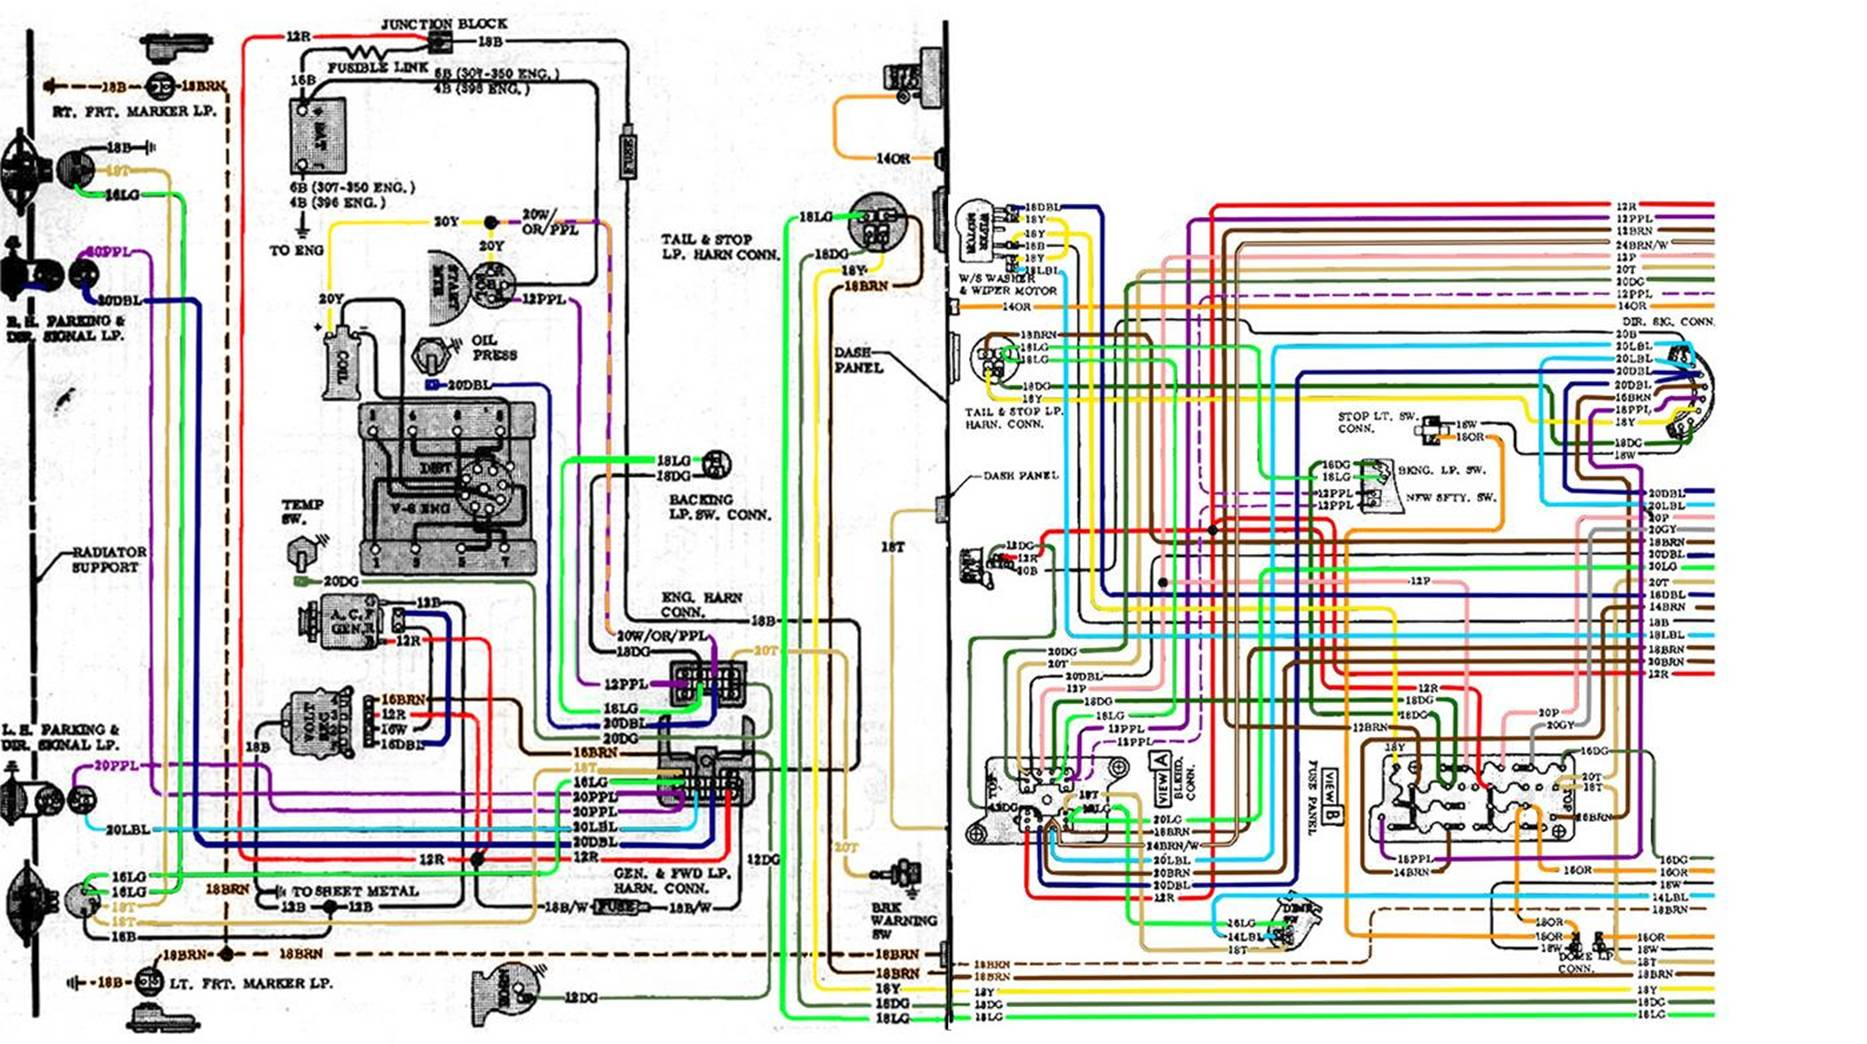 Chevy C10 Wiring Diagram Schemes Headlight 98 S10 Forum